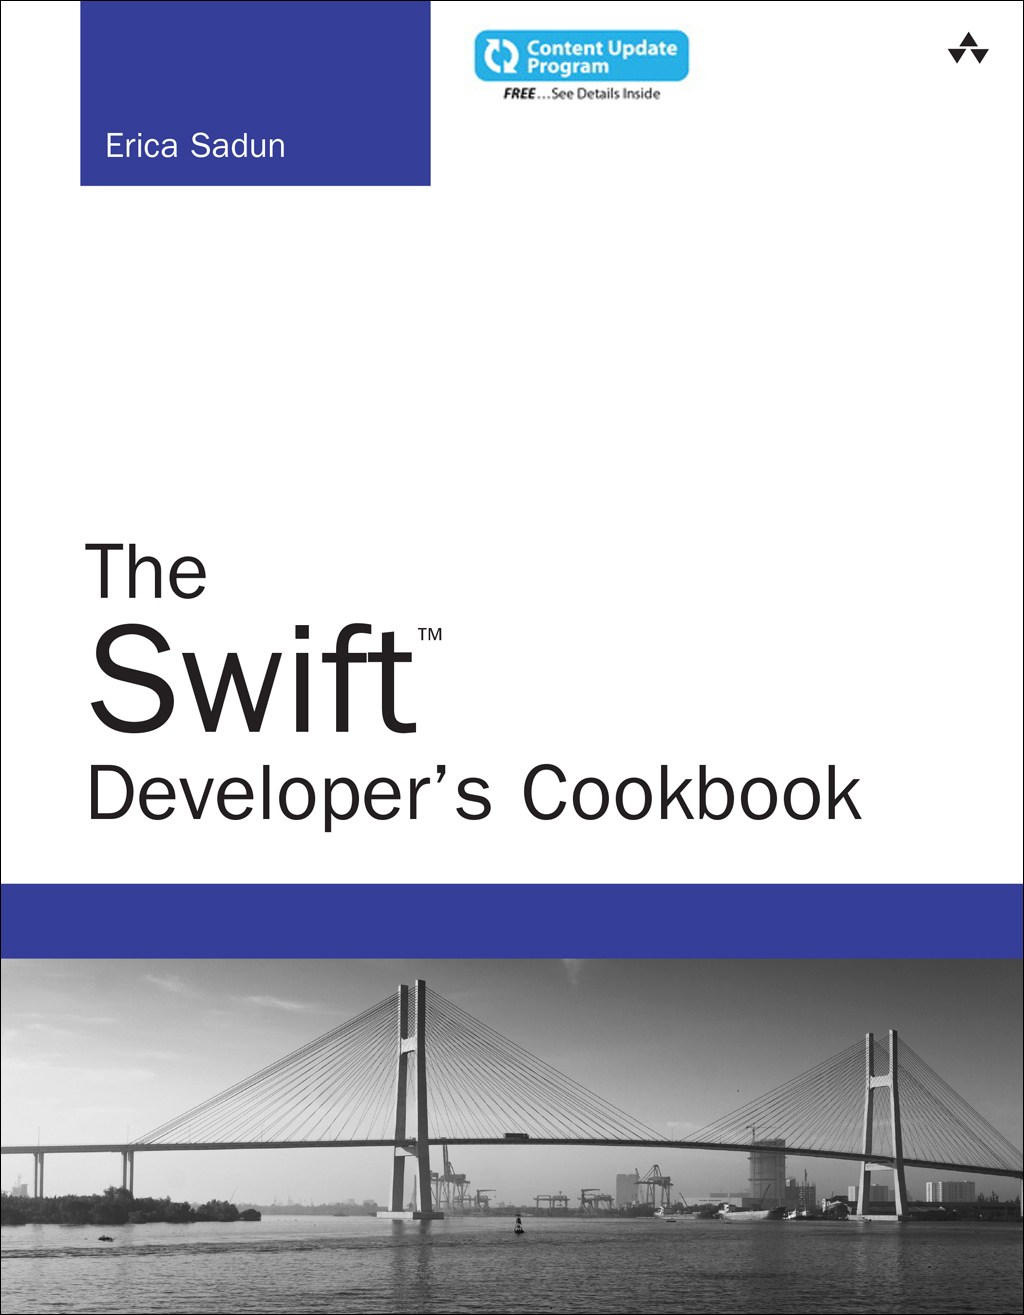 Swift Developer's Cookbook (includes Content Update Program), The